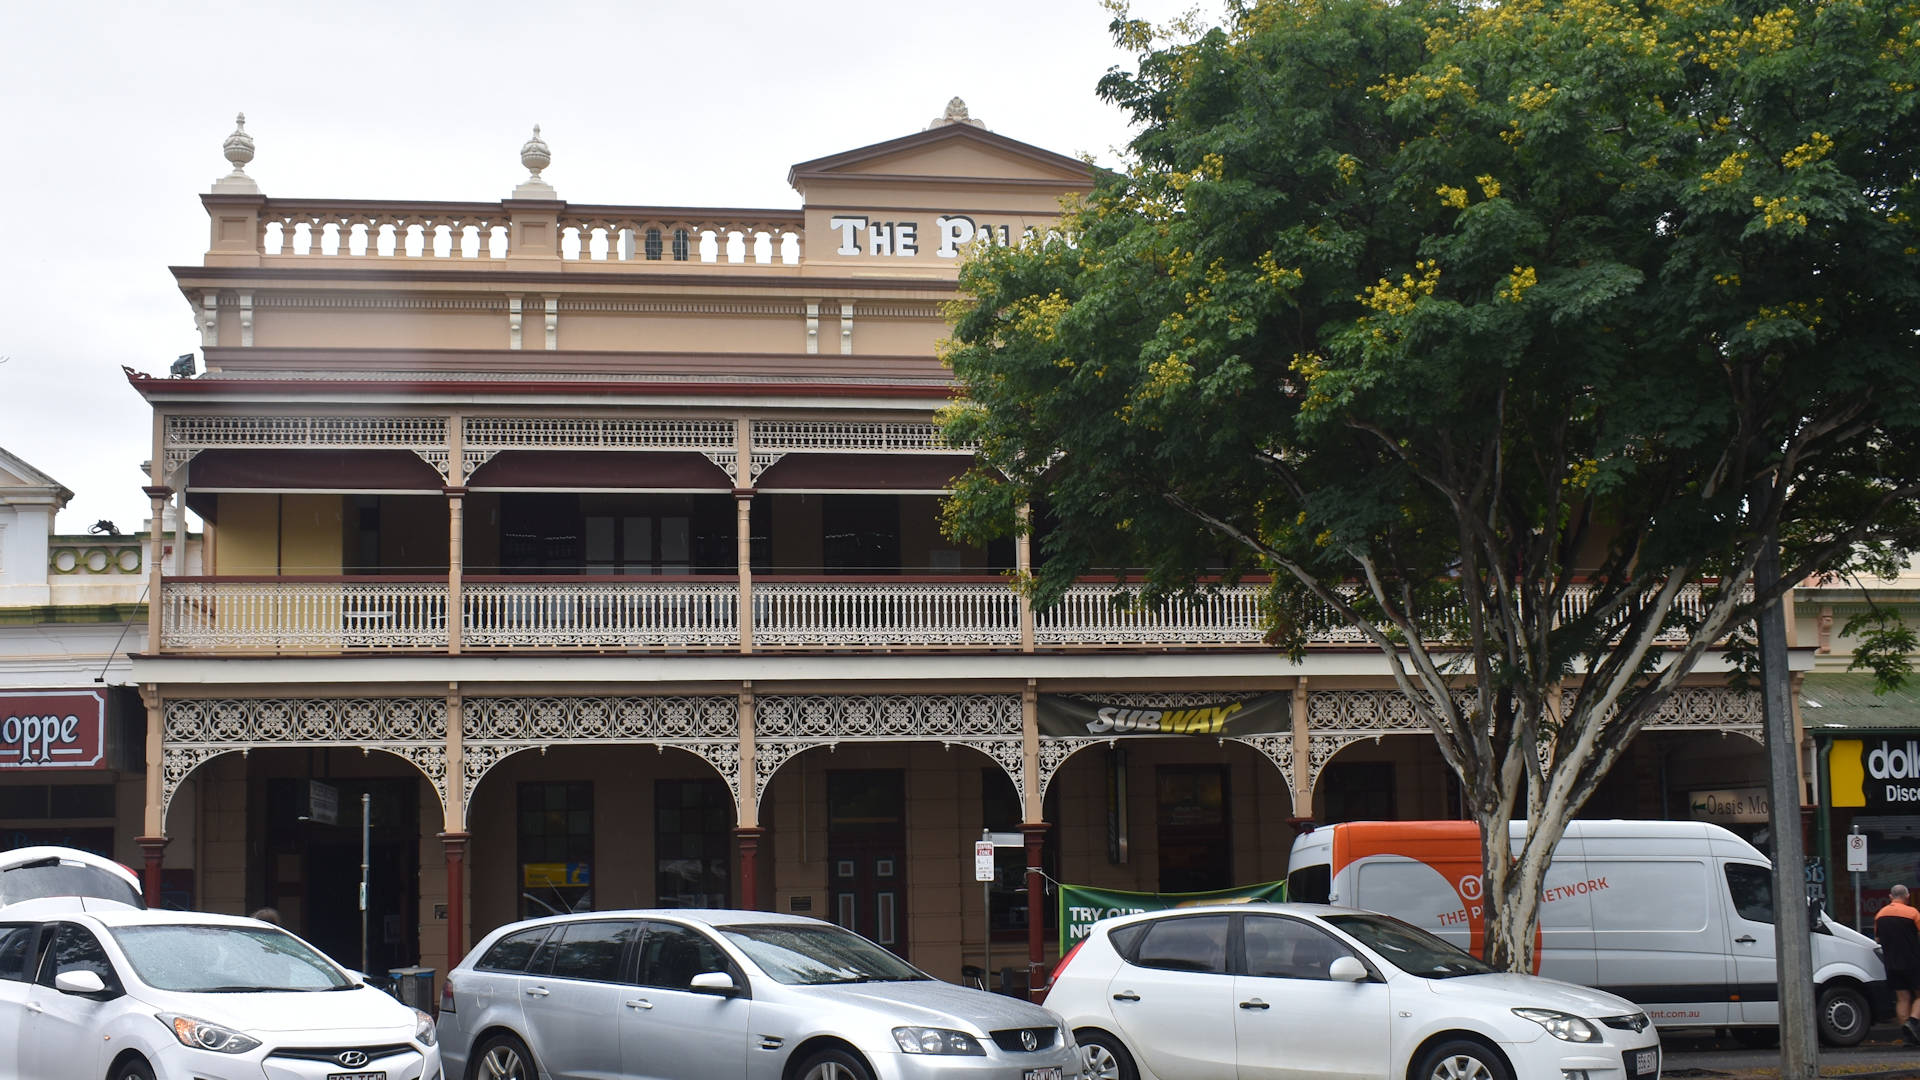 Front of a country town building, taken in Childers Queensland